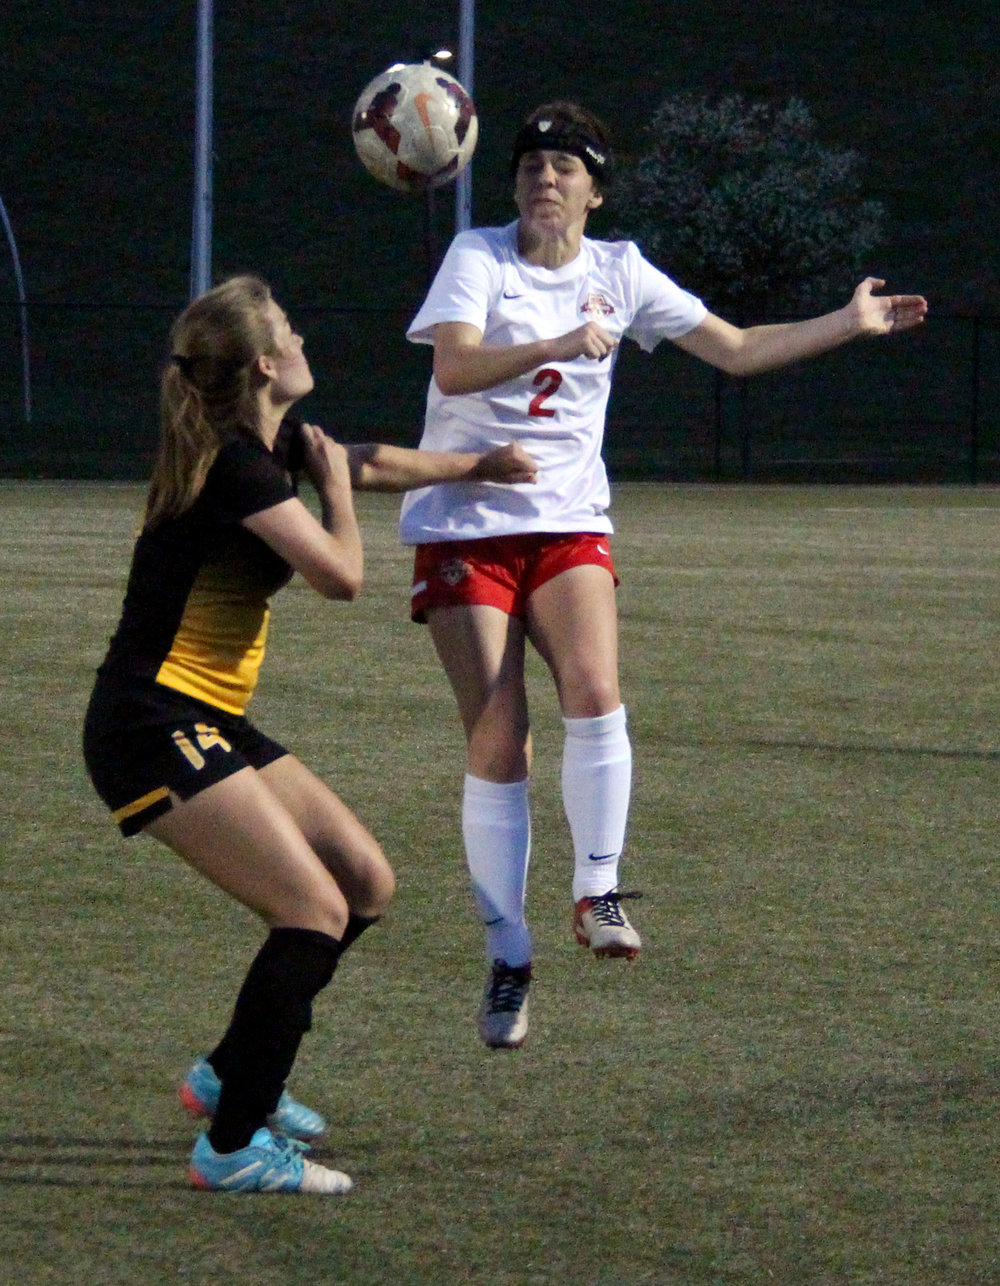 ROSS MARTIN/Citizen photo Park Hill senior defender Andie Powell (2) heads a ball away for a clearance against St. Teresa's Academy on Wednesday, April 12 at Park Hill District Soccer Complex in Riverside, Mo.